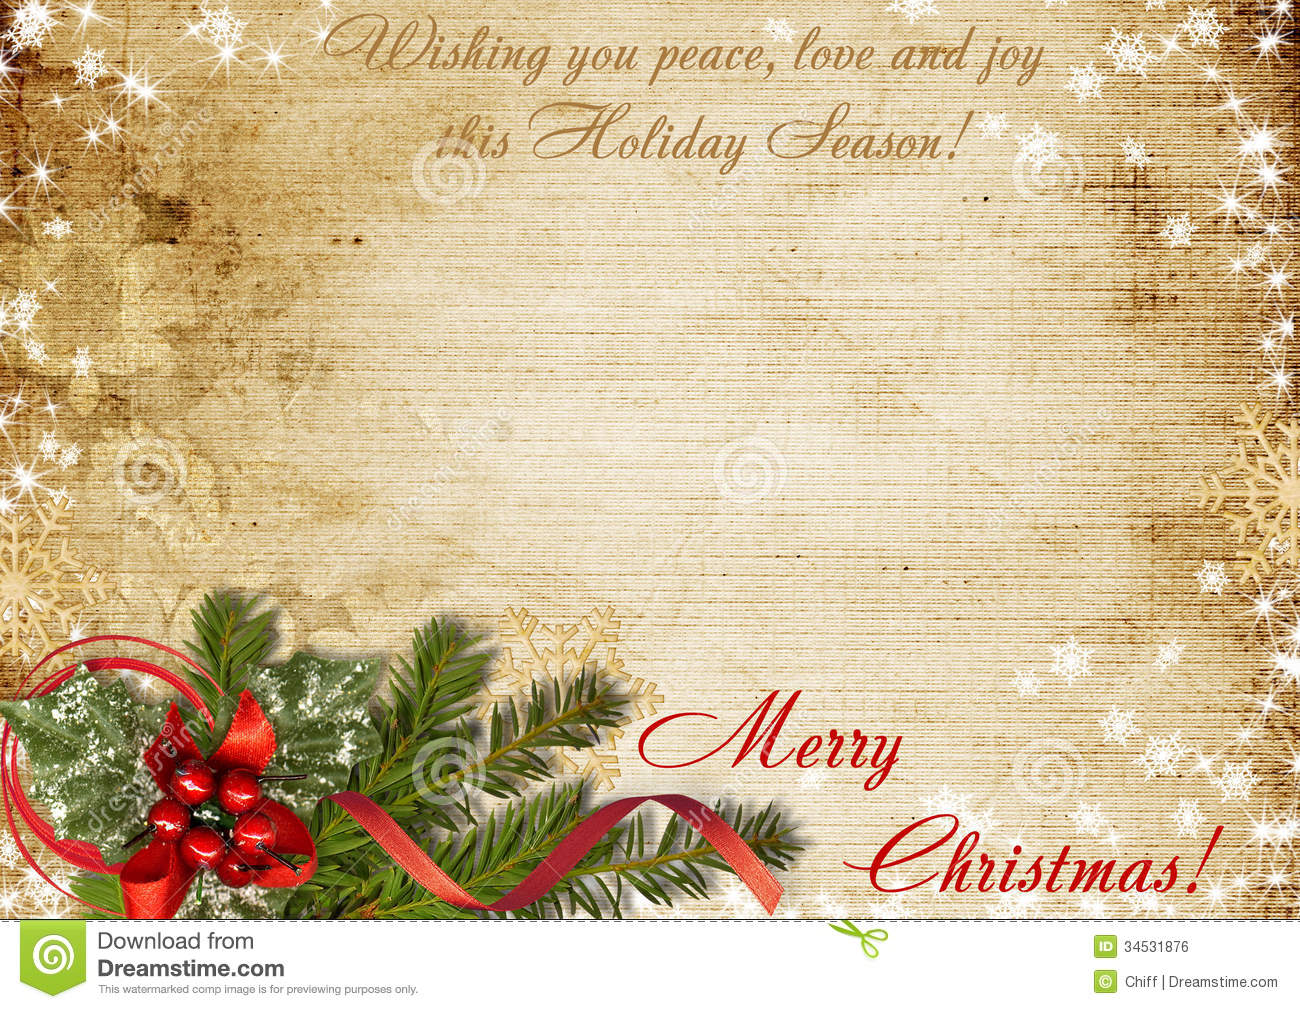 Christmas Card Background.Vintage Christmas Card With The Wishes Stock Illustration